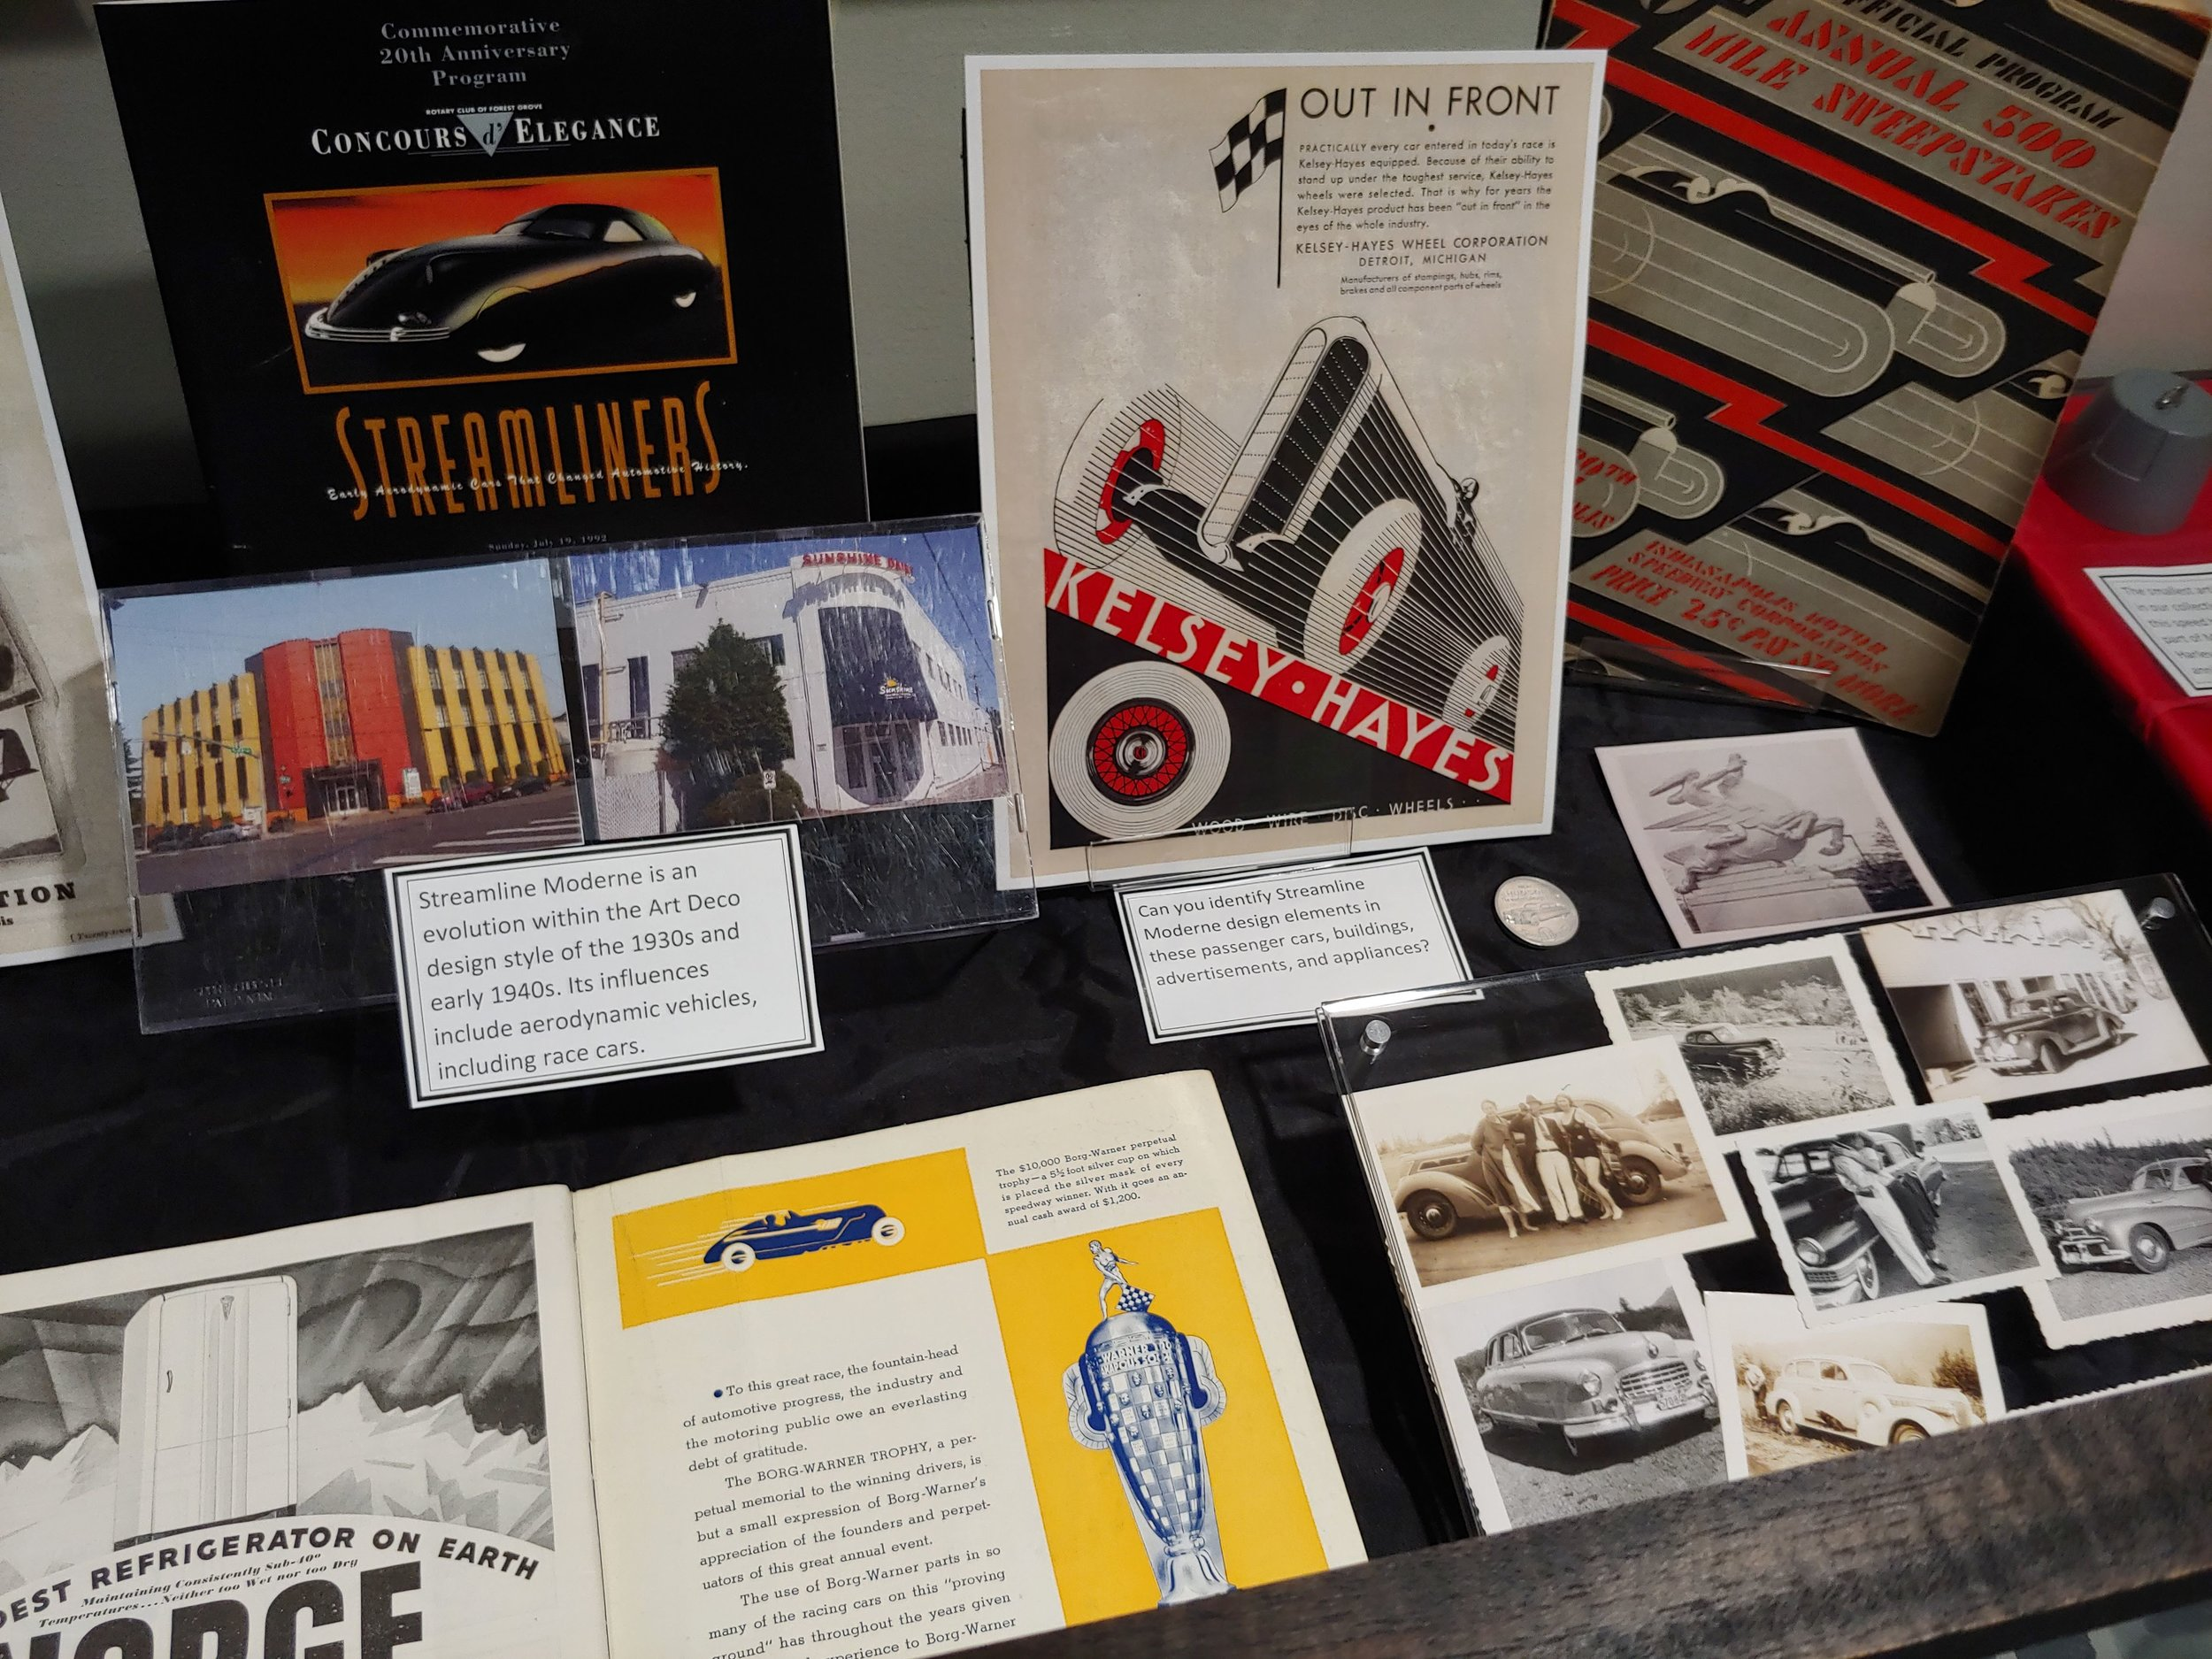 Archive Room display case focused on Streamline Moderne; related WOS Archive blog post article available*